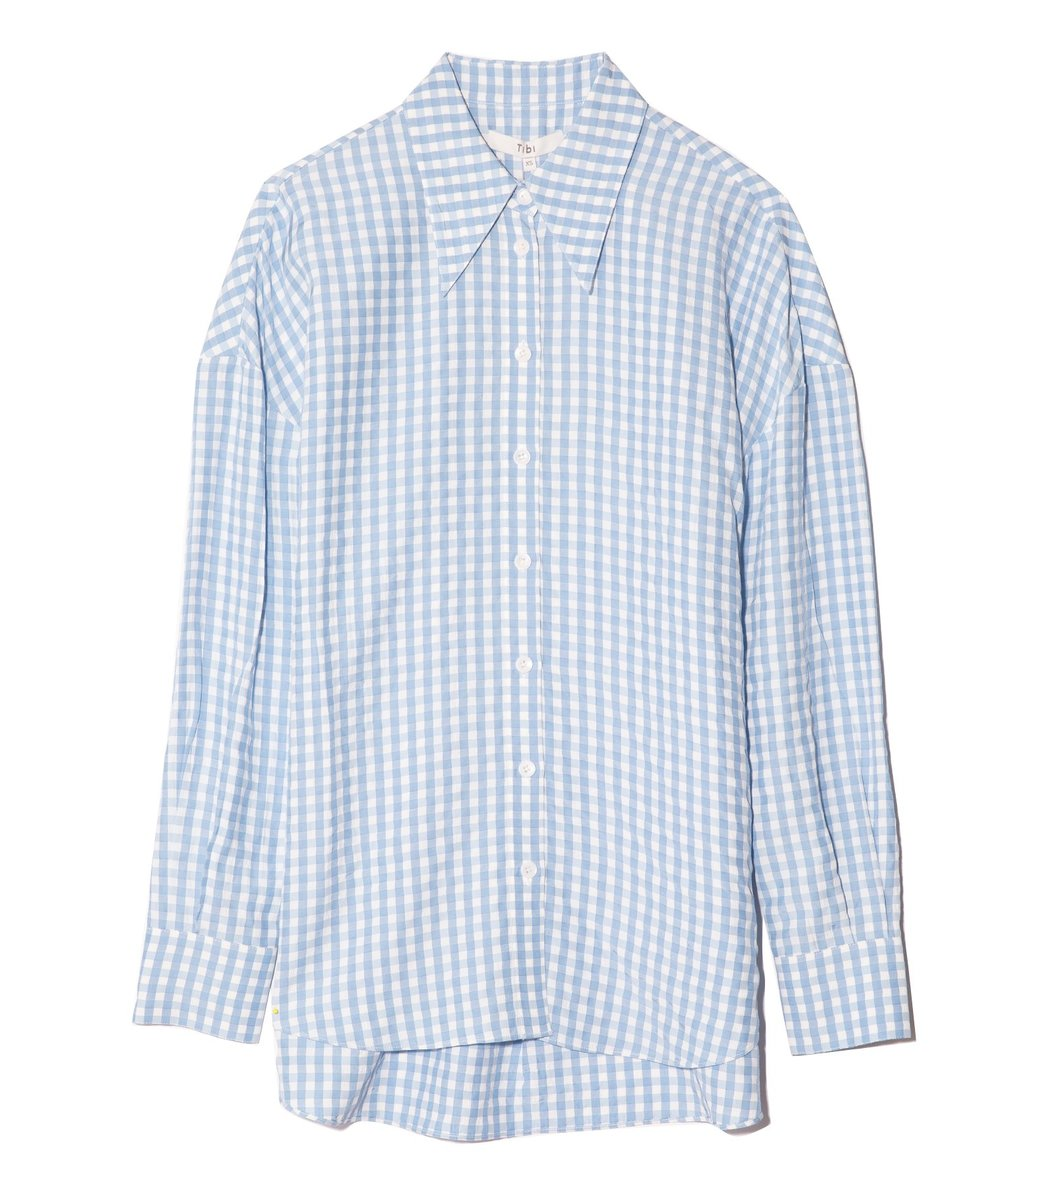 Tibi Viscose Gingham Relaxed Blouse in Light Blue Multi